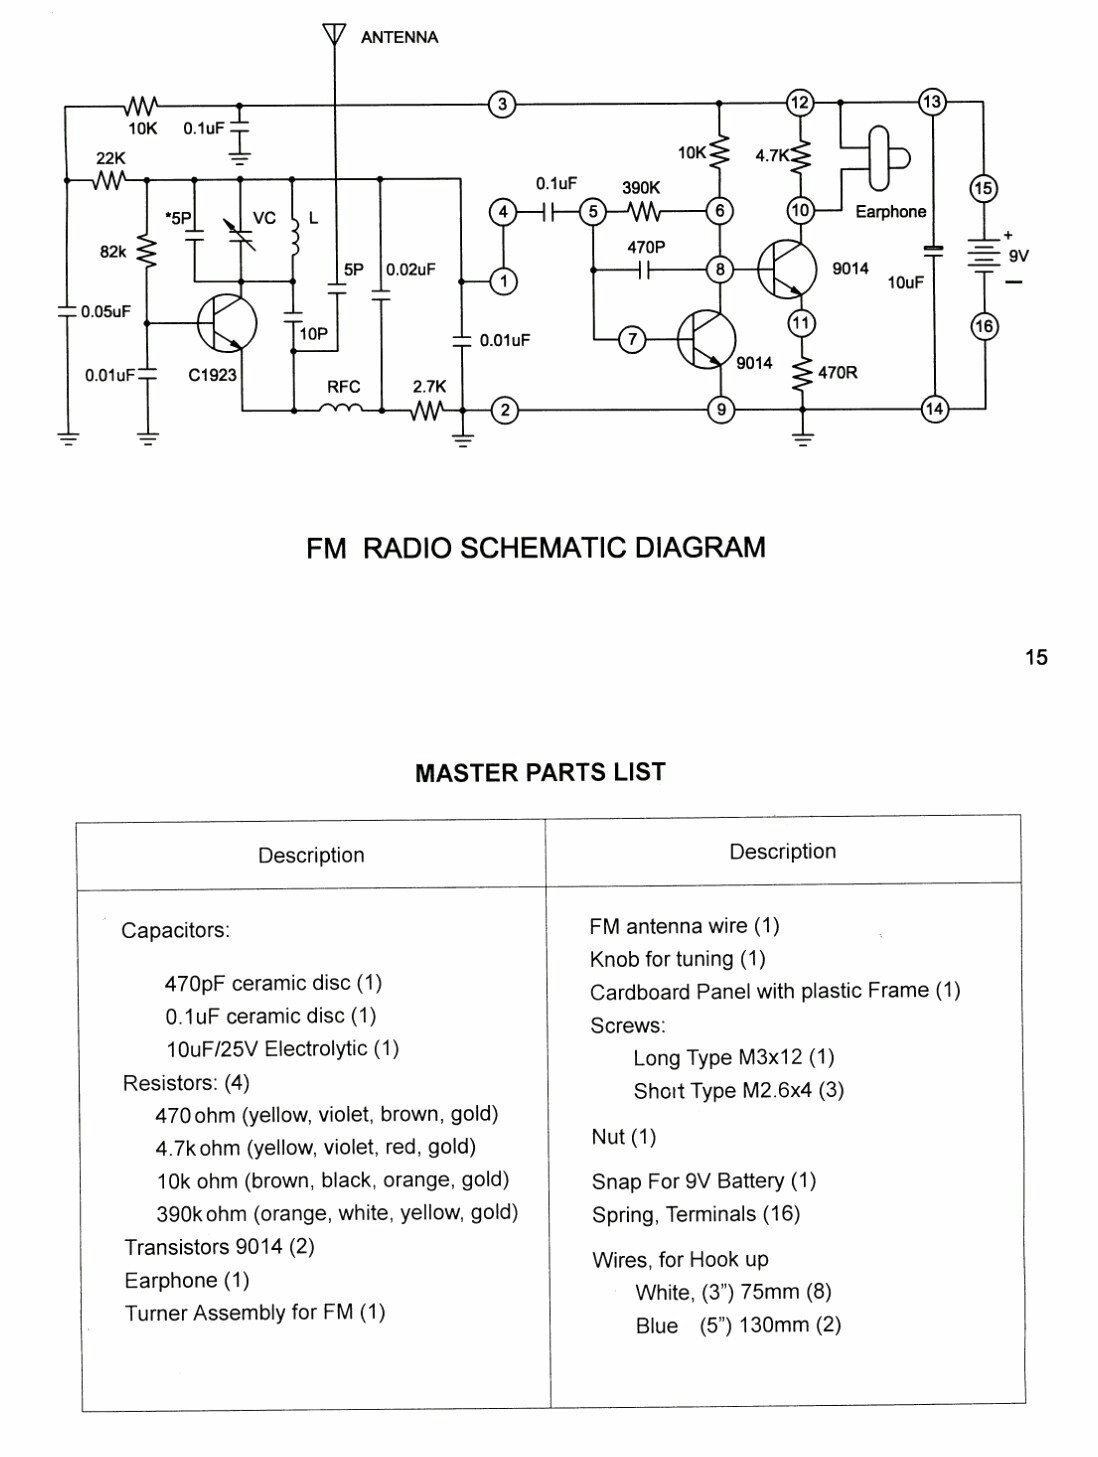 Simple Fm Receiver Circuit Diagram Electronic Kits Diagrams For This Time I Will Share The Scheme From Kit Of 90s And Is Quite Easy To Make Because It Uses Only